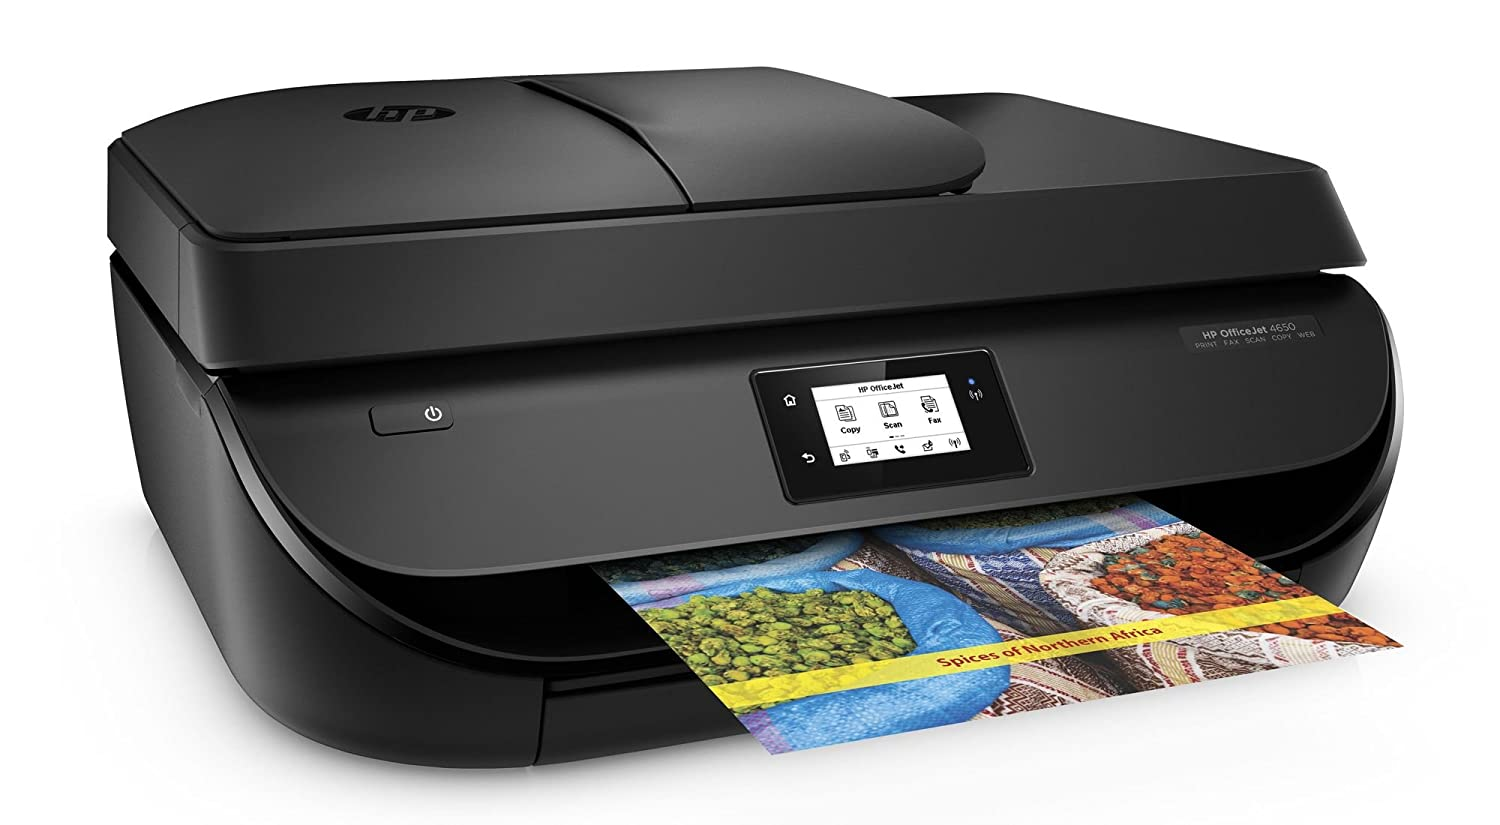 HP OfficeJet 4650 Stampante Ink All-in-One F1H96B A4 DeskJet copia